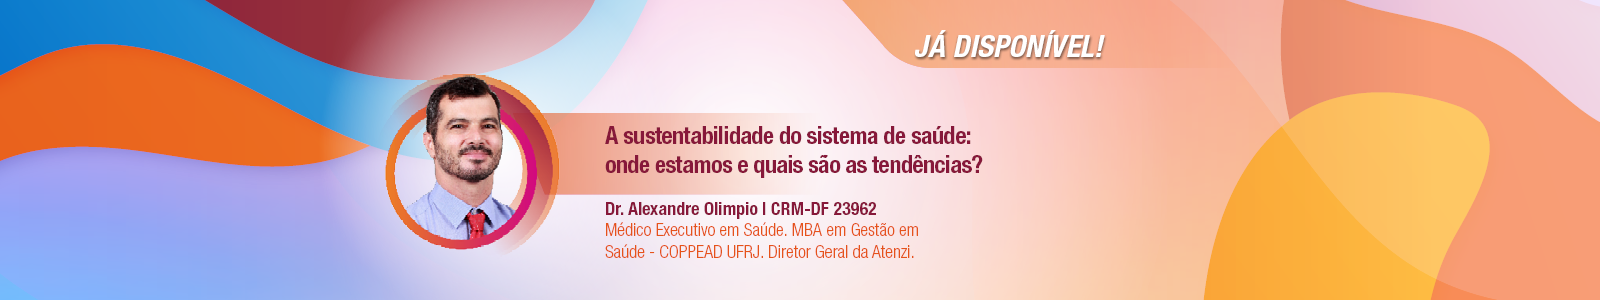 VF2021-banners aulas21